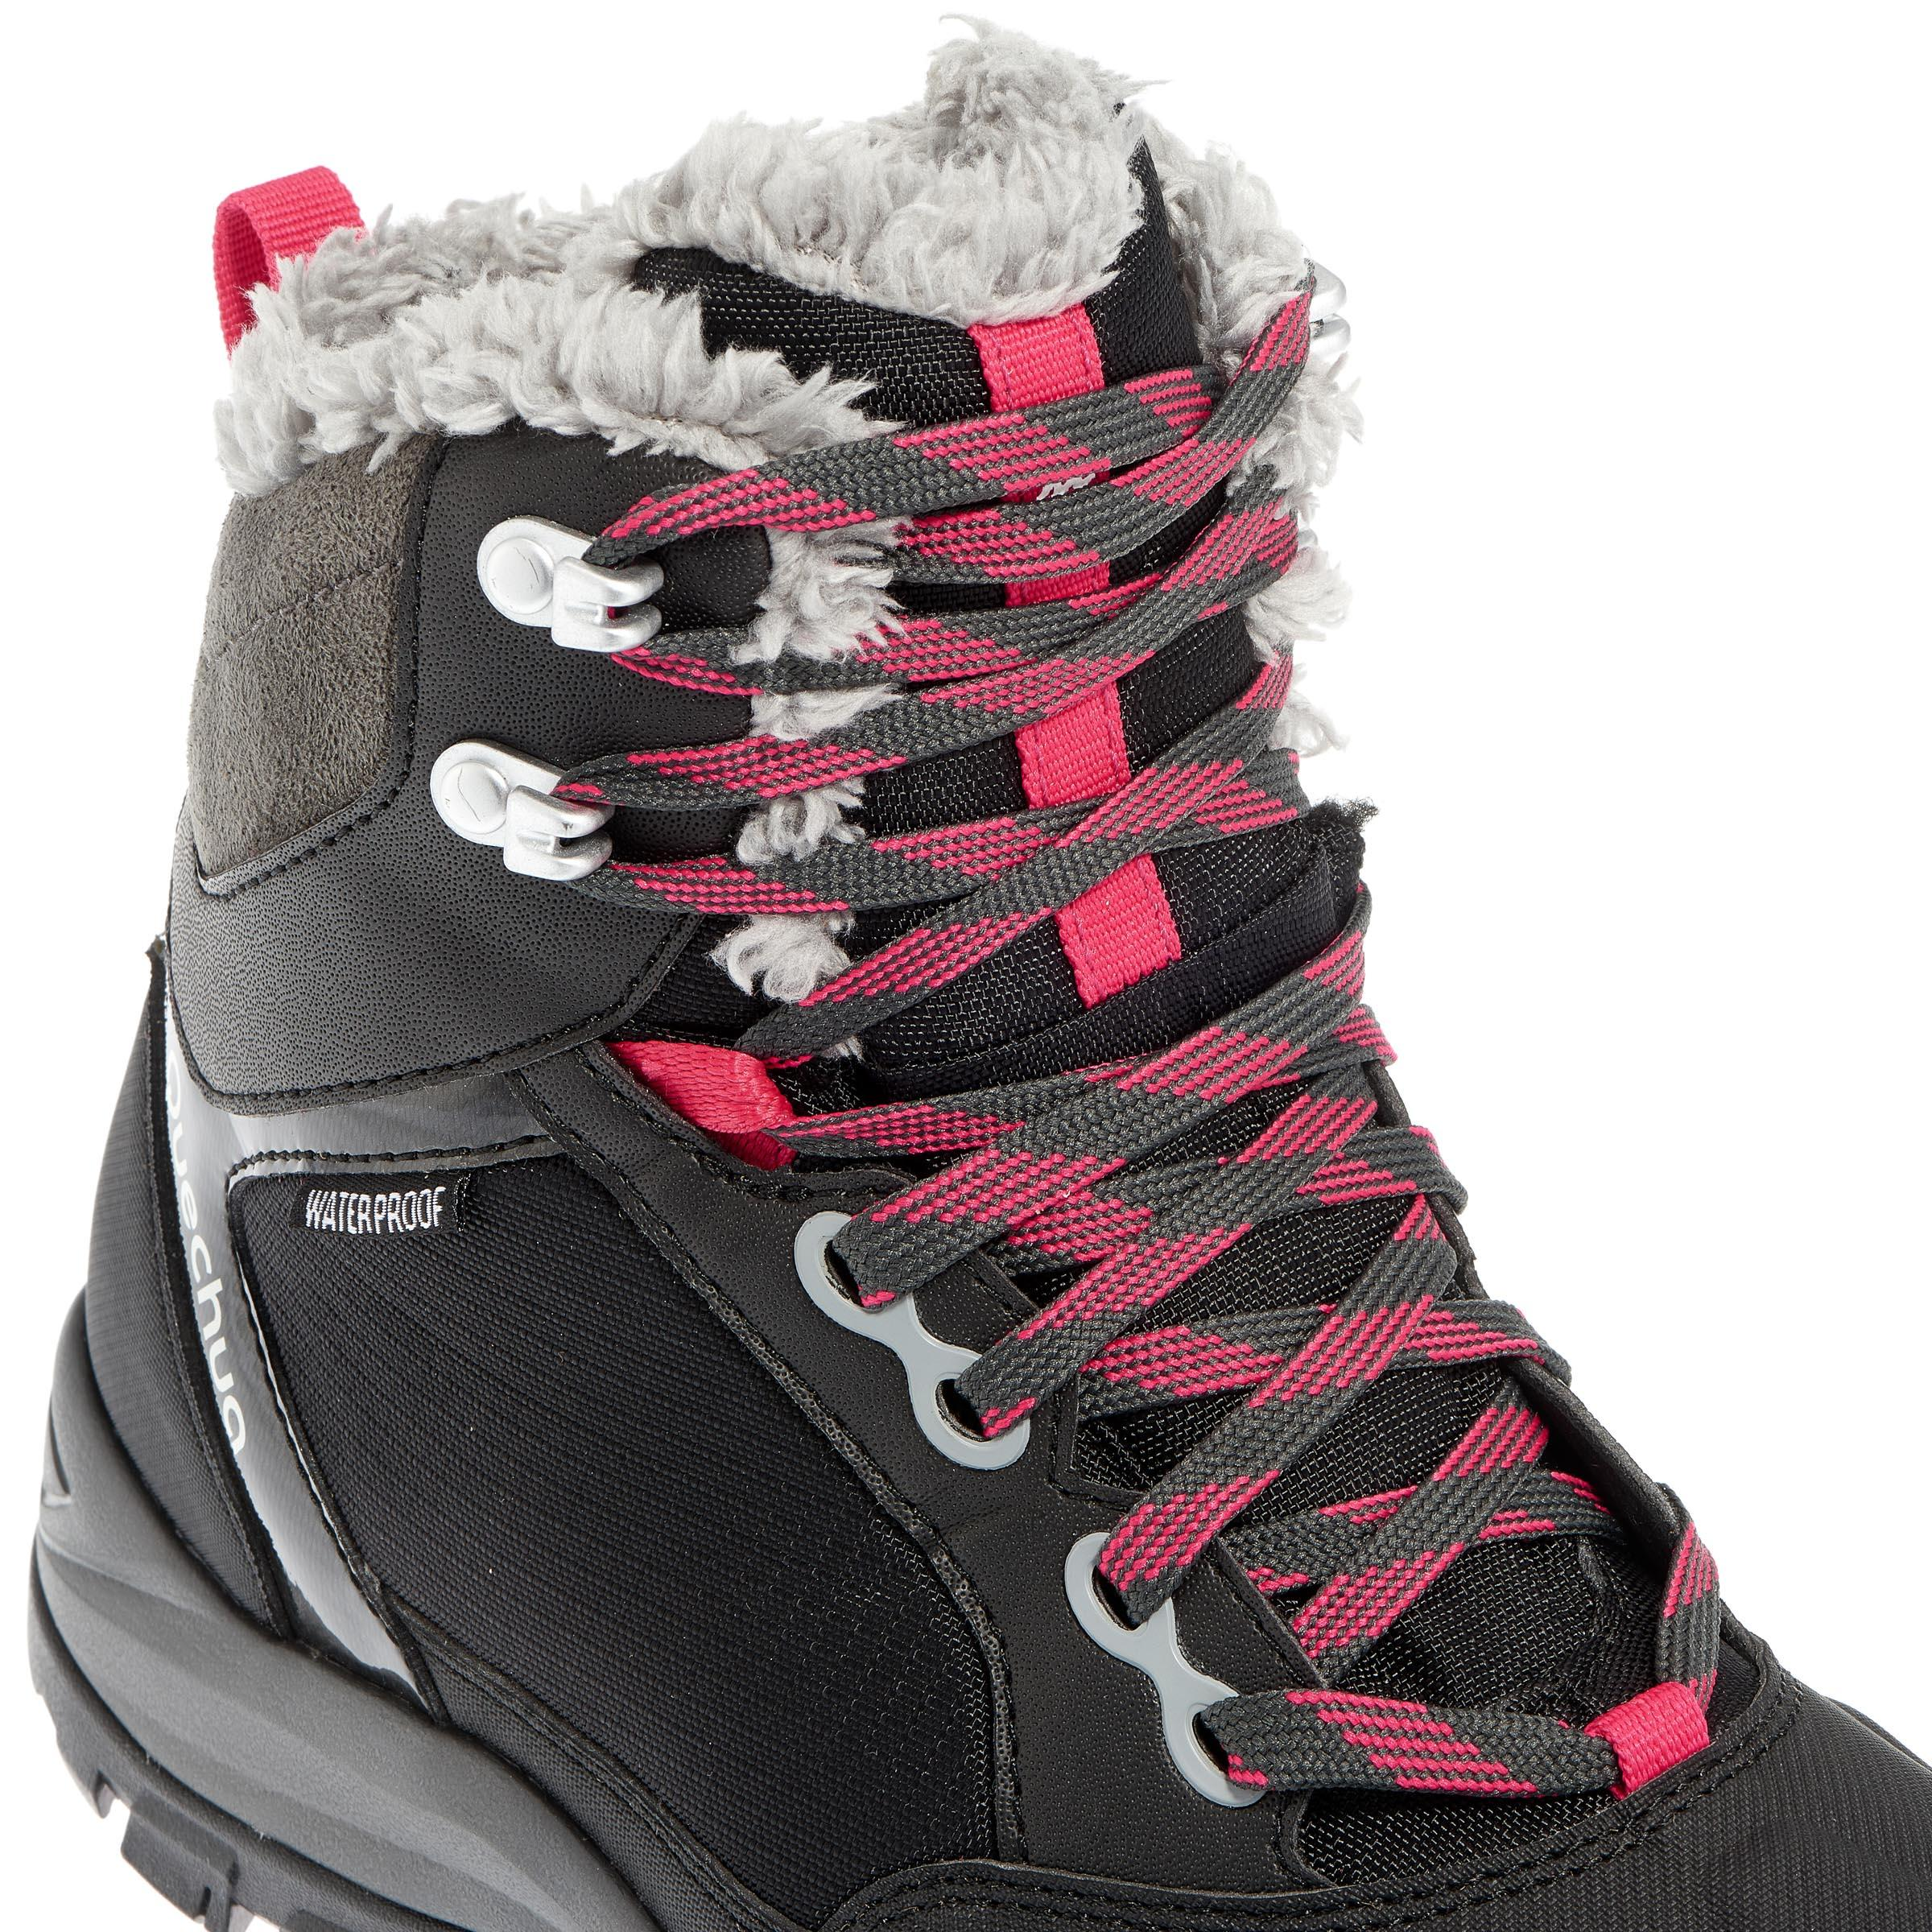 Women's Snow Hiking Shoes SH520 X-Warm Mid - Black